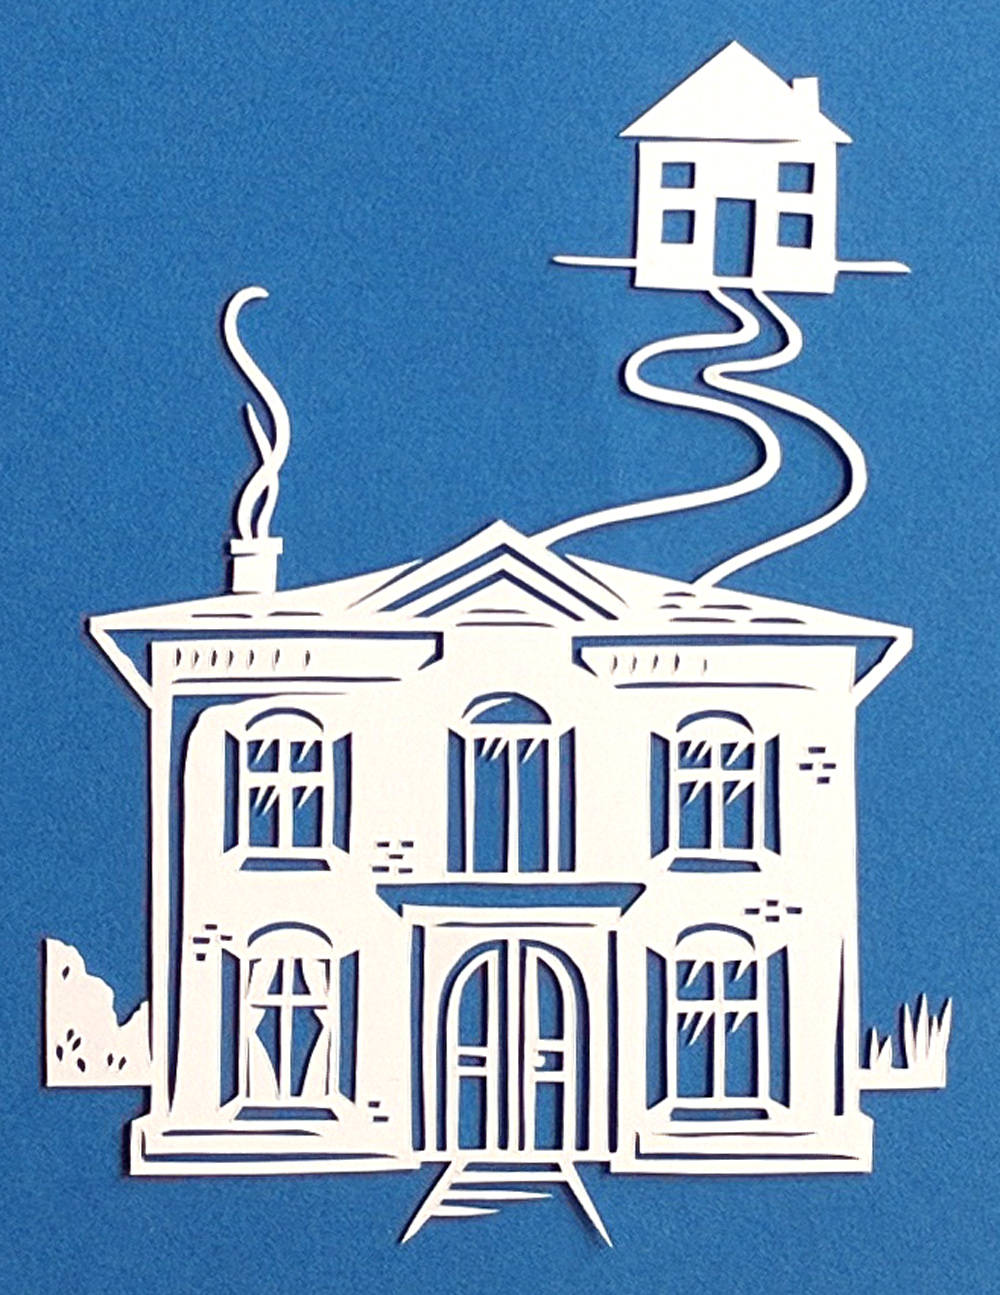 papercut-illustration-blue-house